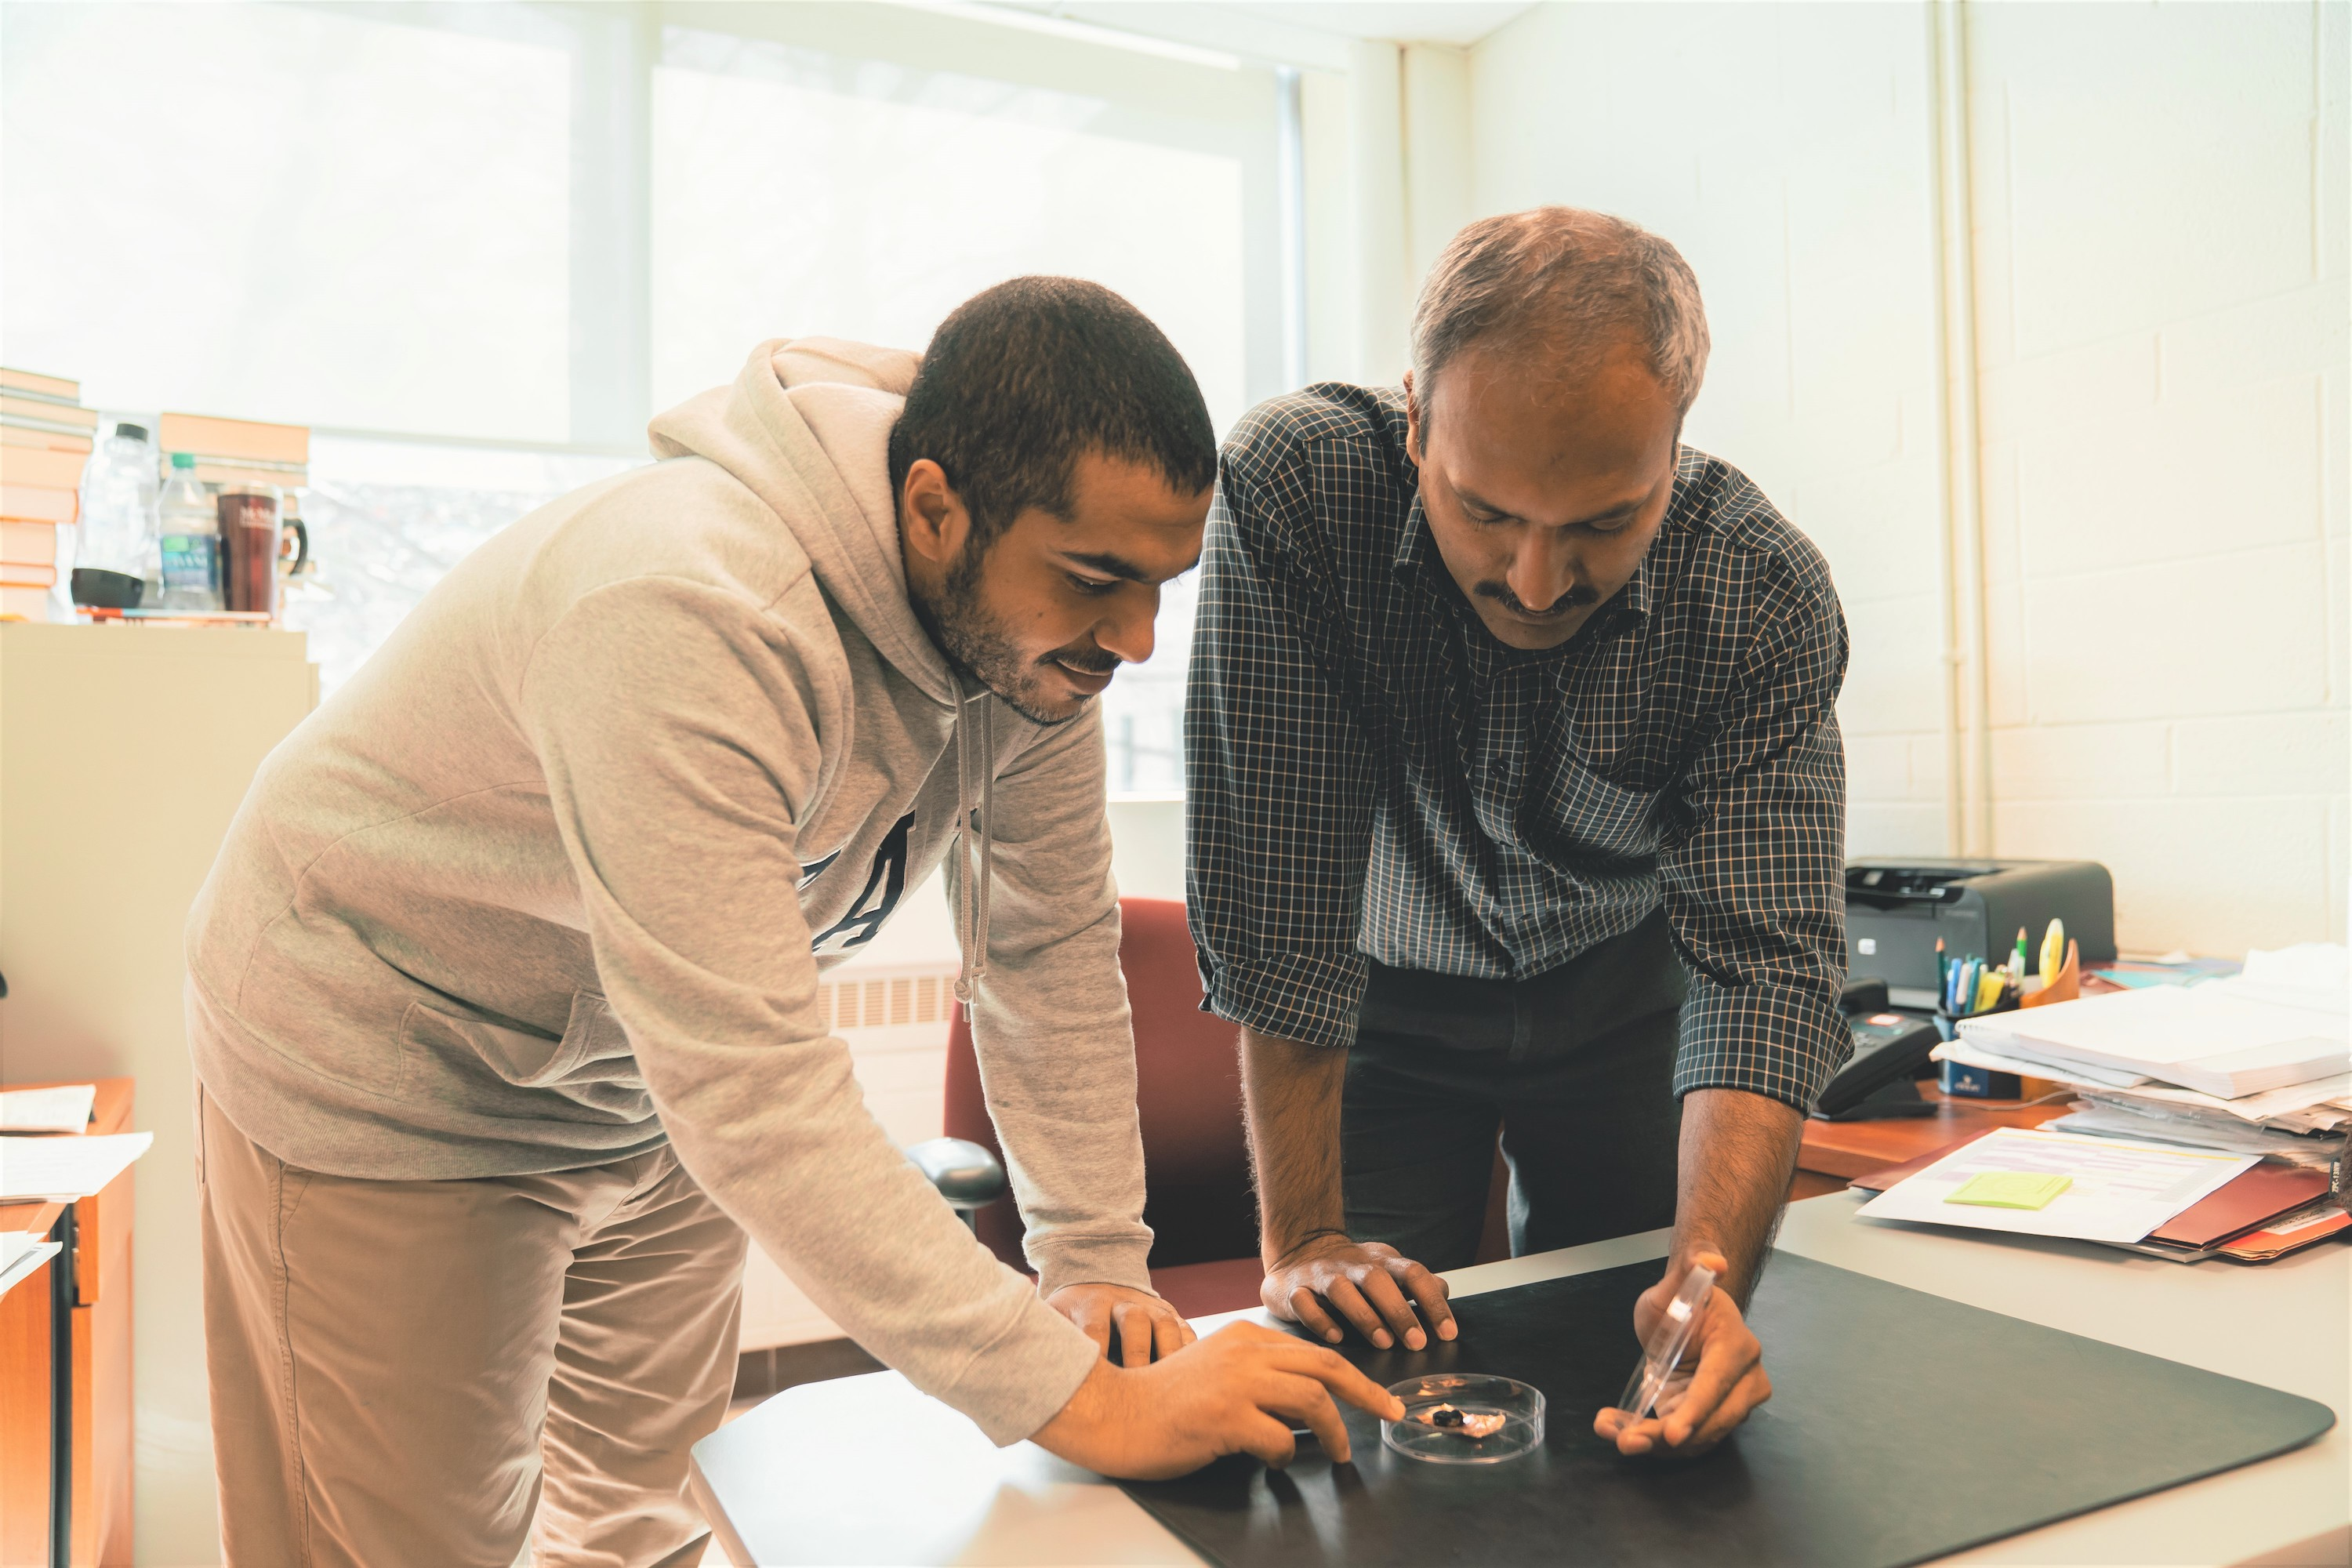 McMaster engineers create a fireproof sensor to track firefighters, miners, oil workers in high-risk situations